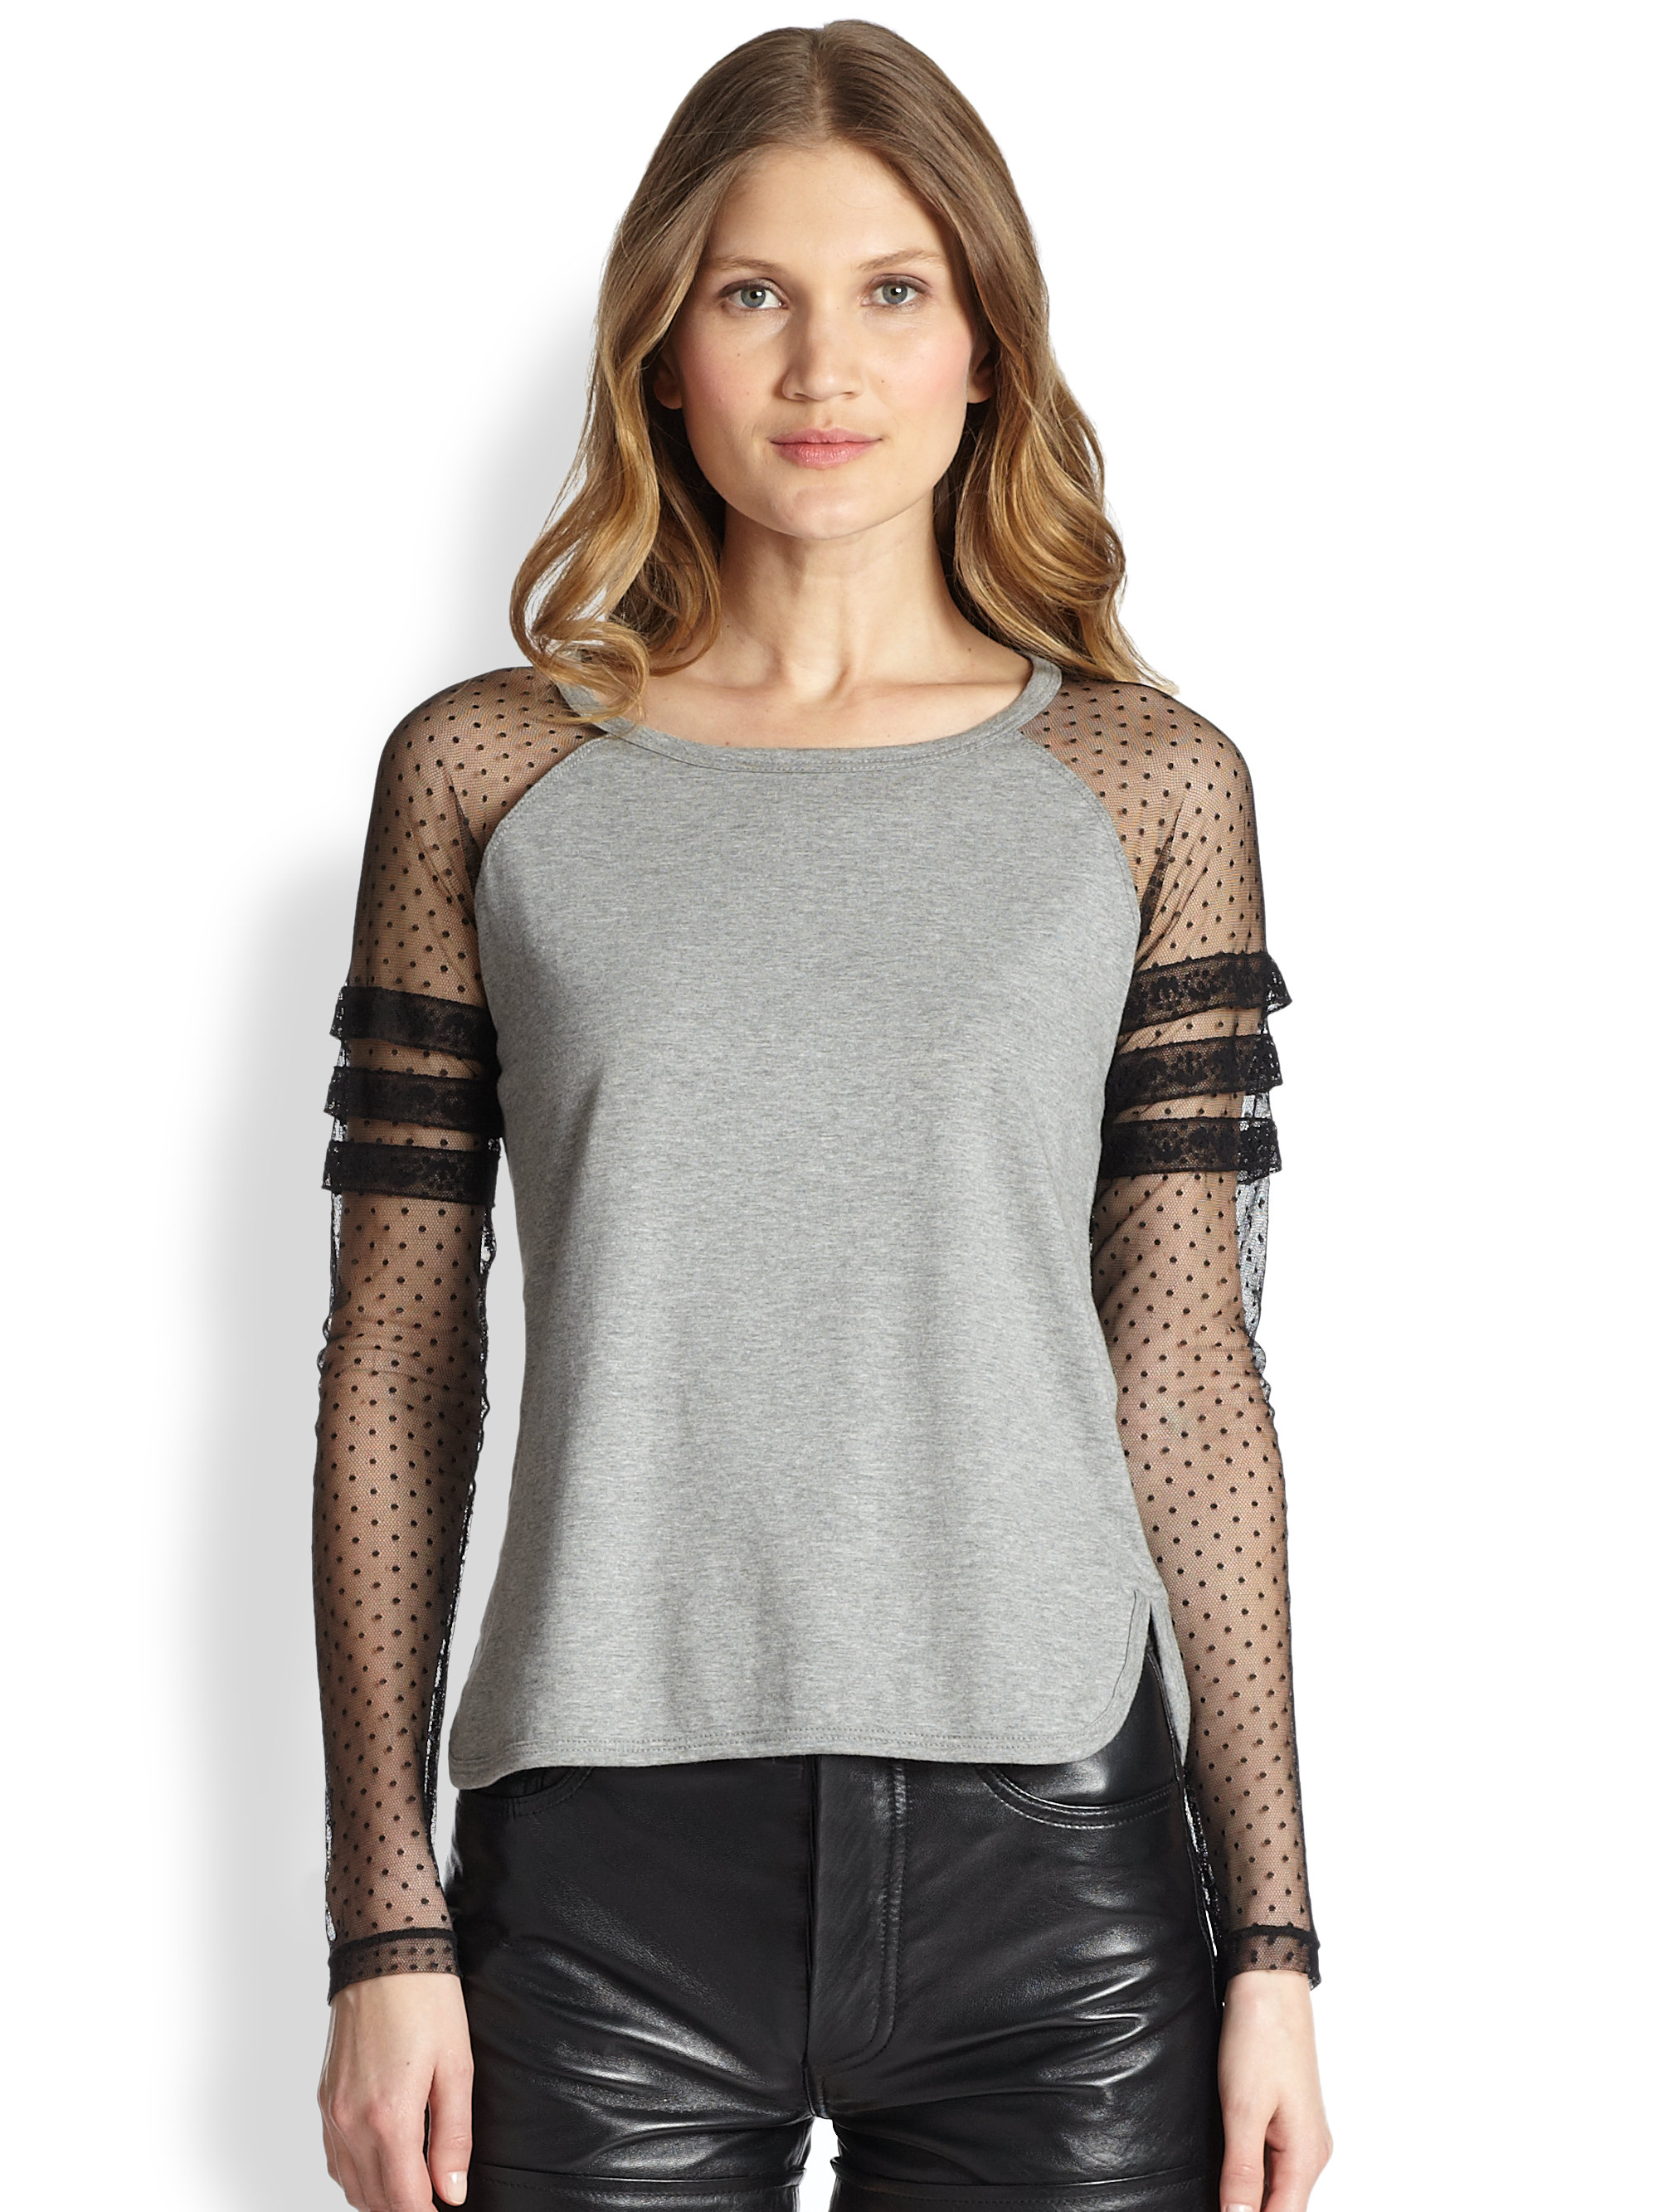 Red Valentino Spring 2016: RED Valentino Jersey Contrast Baseball Tee In Gray